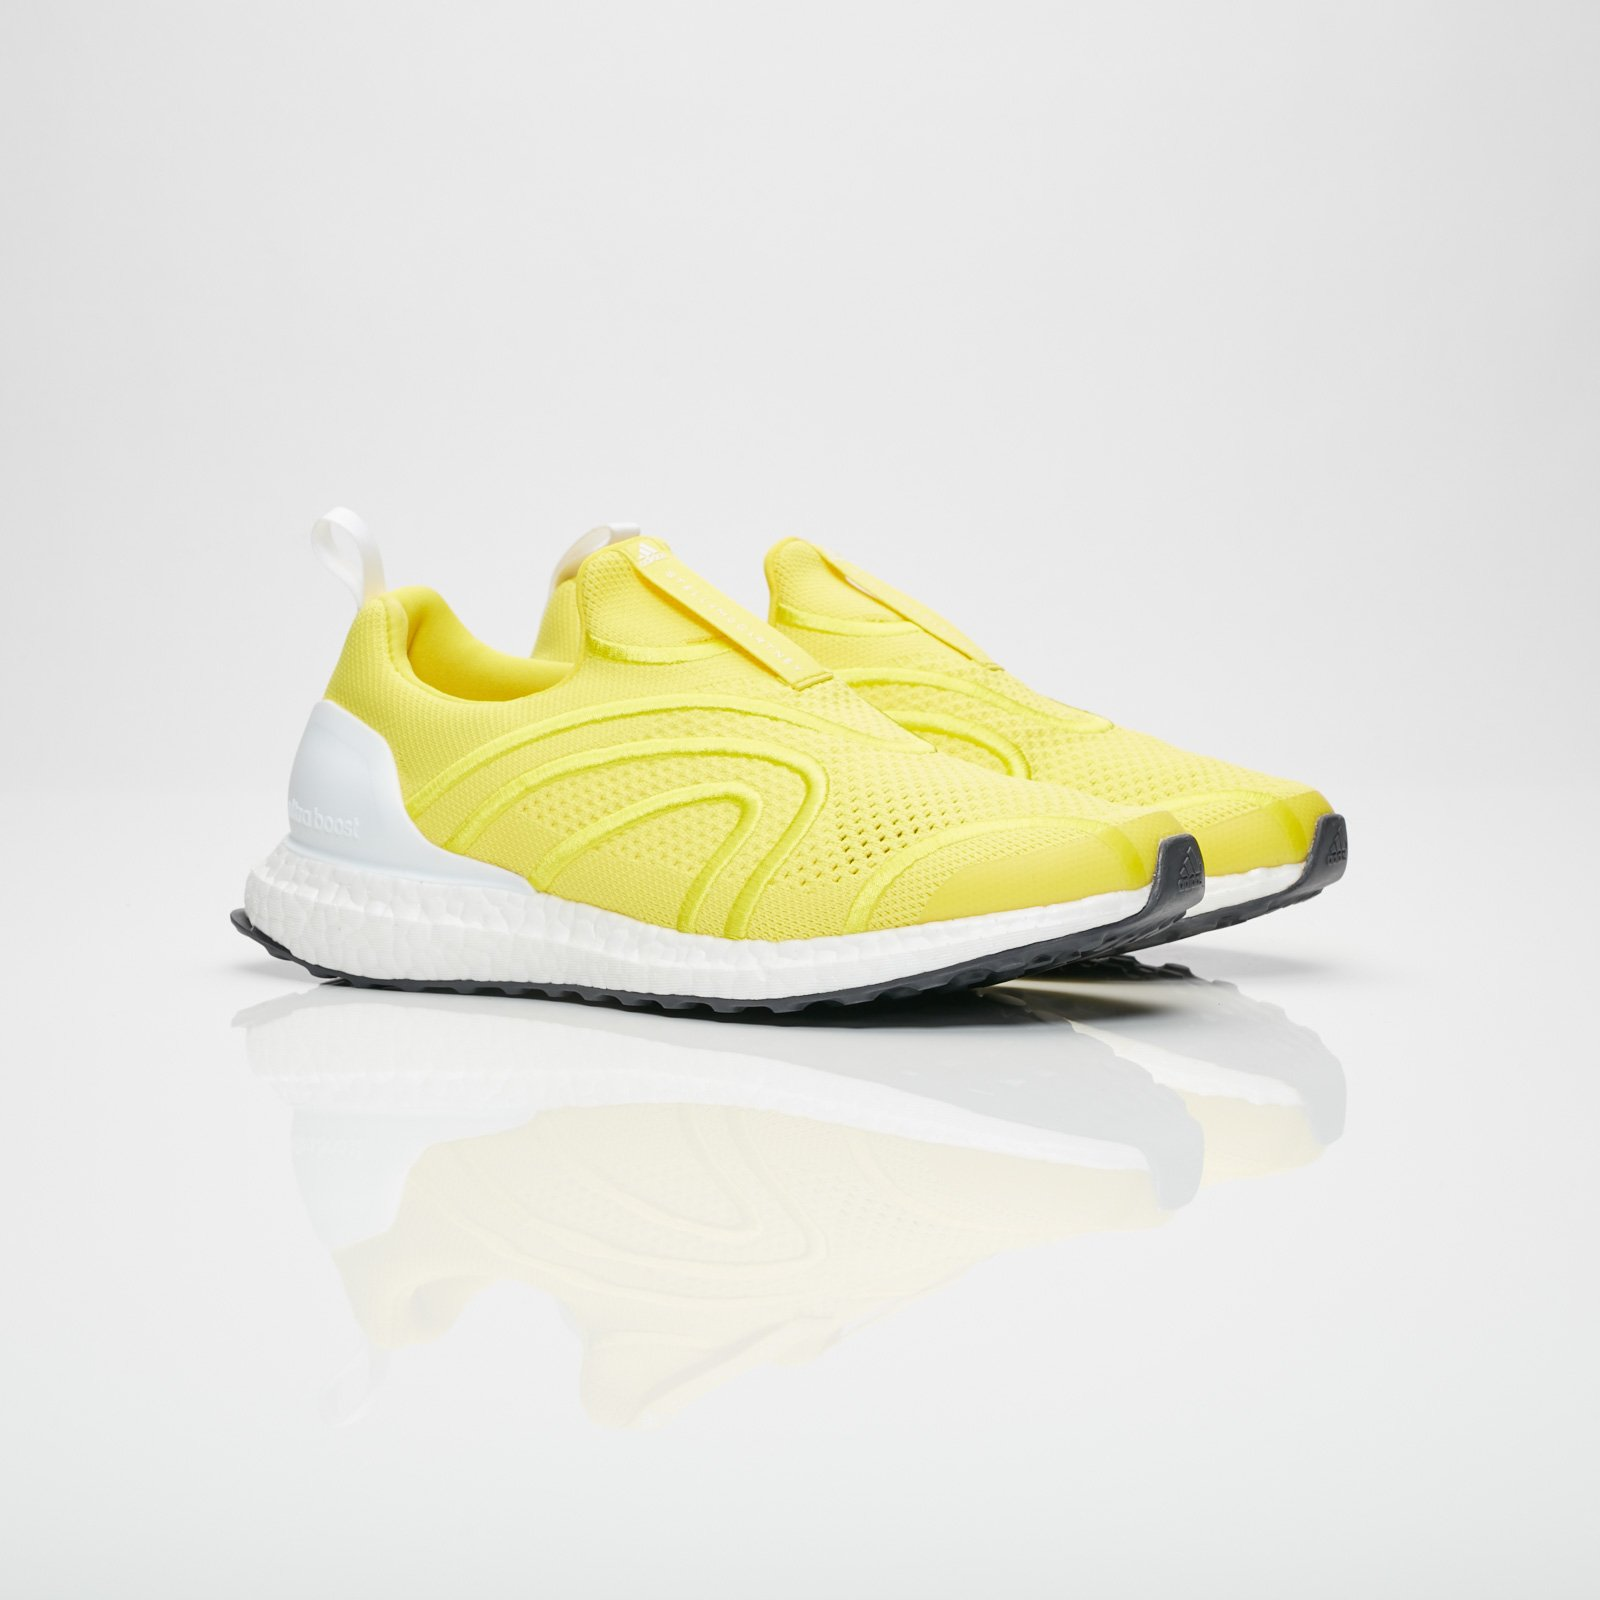 hot sale online d0a7d df1ed adidas by Stella Mccartney UltraBOOST Uncaged